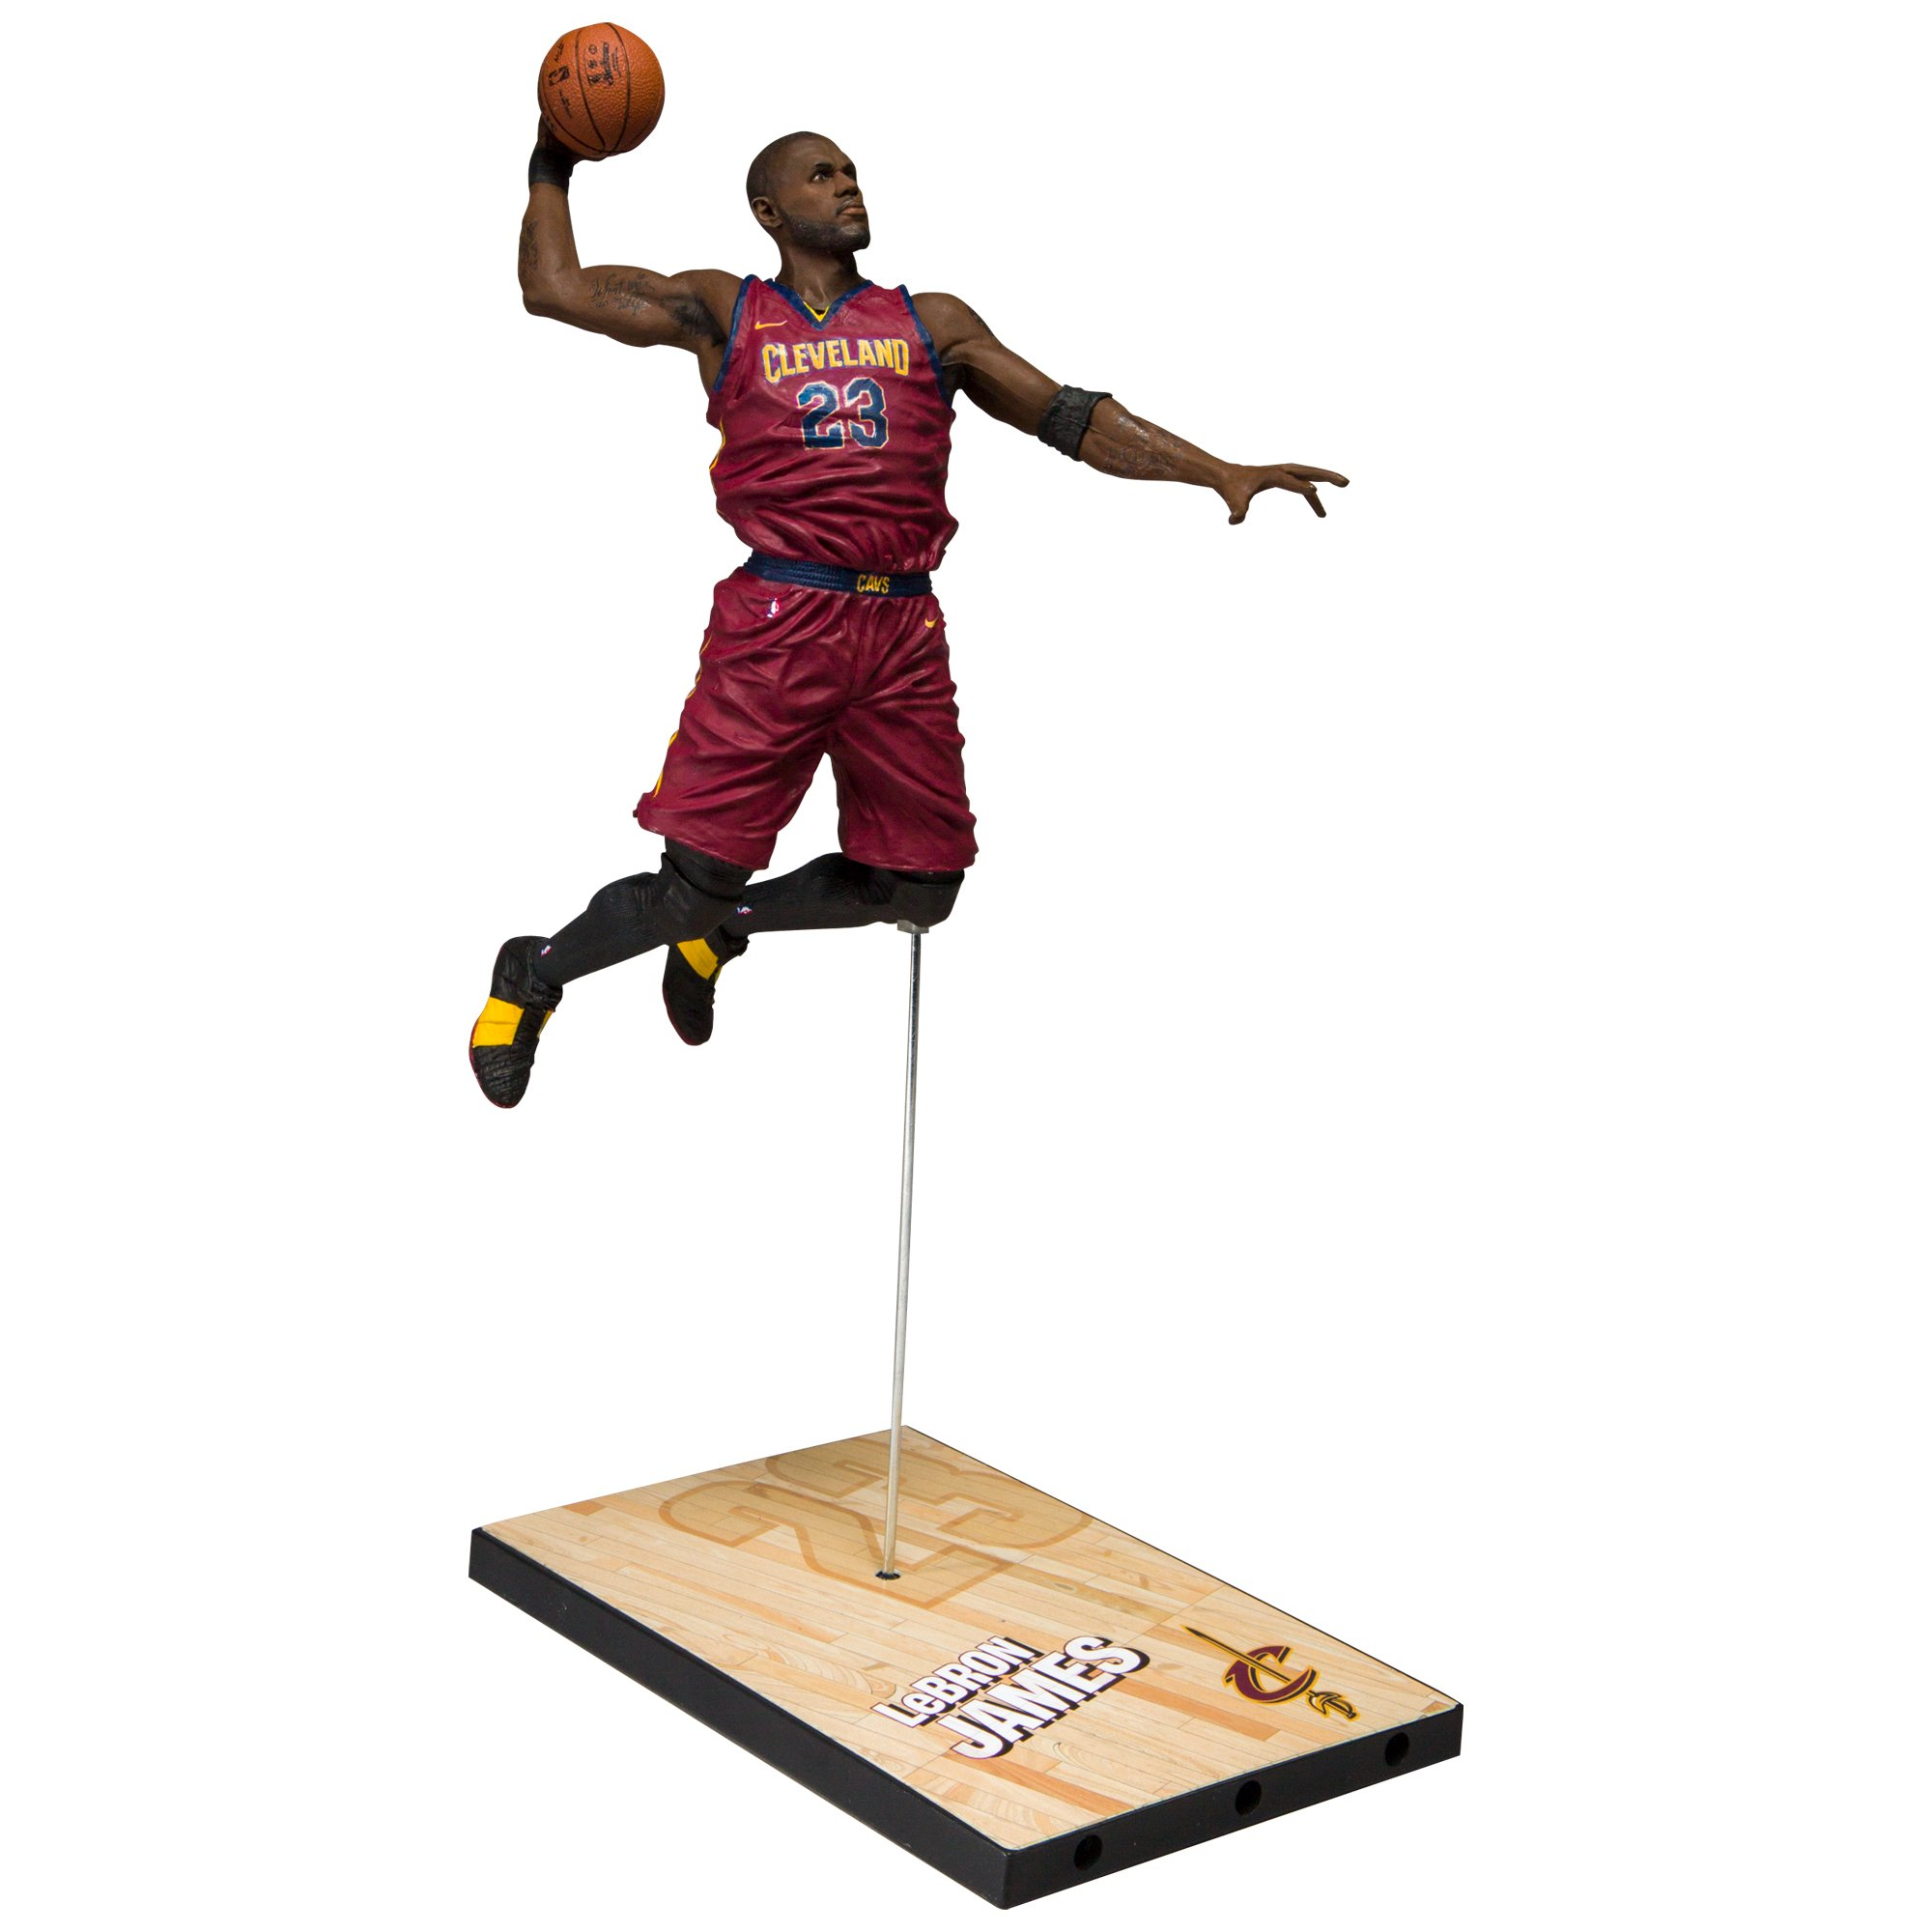 McFarlane Toys Nba Series 31 Lebron James Cleveland Cavaliers Action Figure by McFarlane